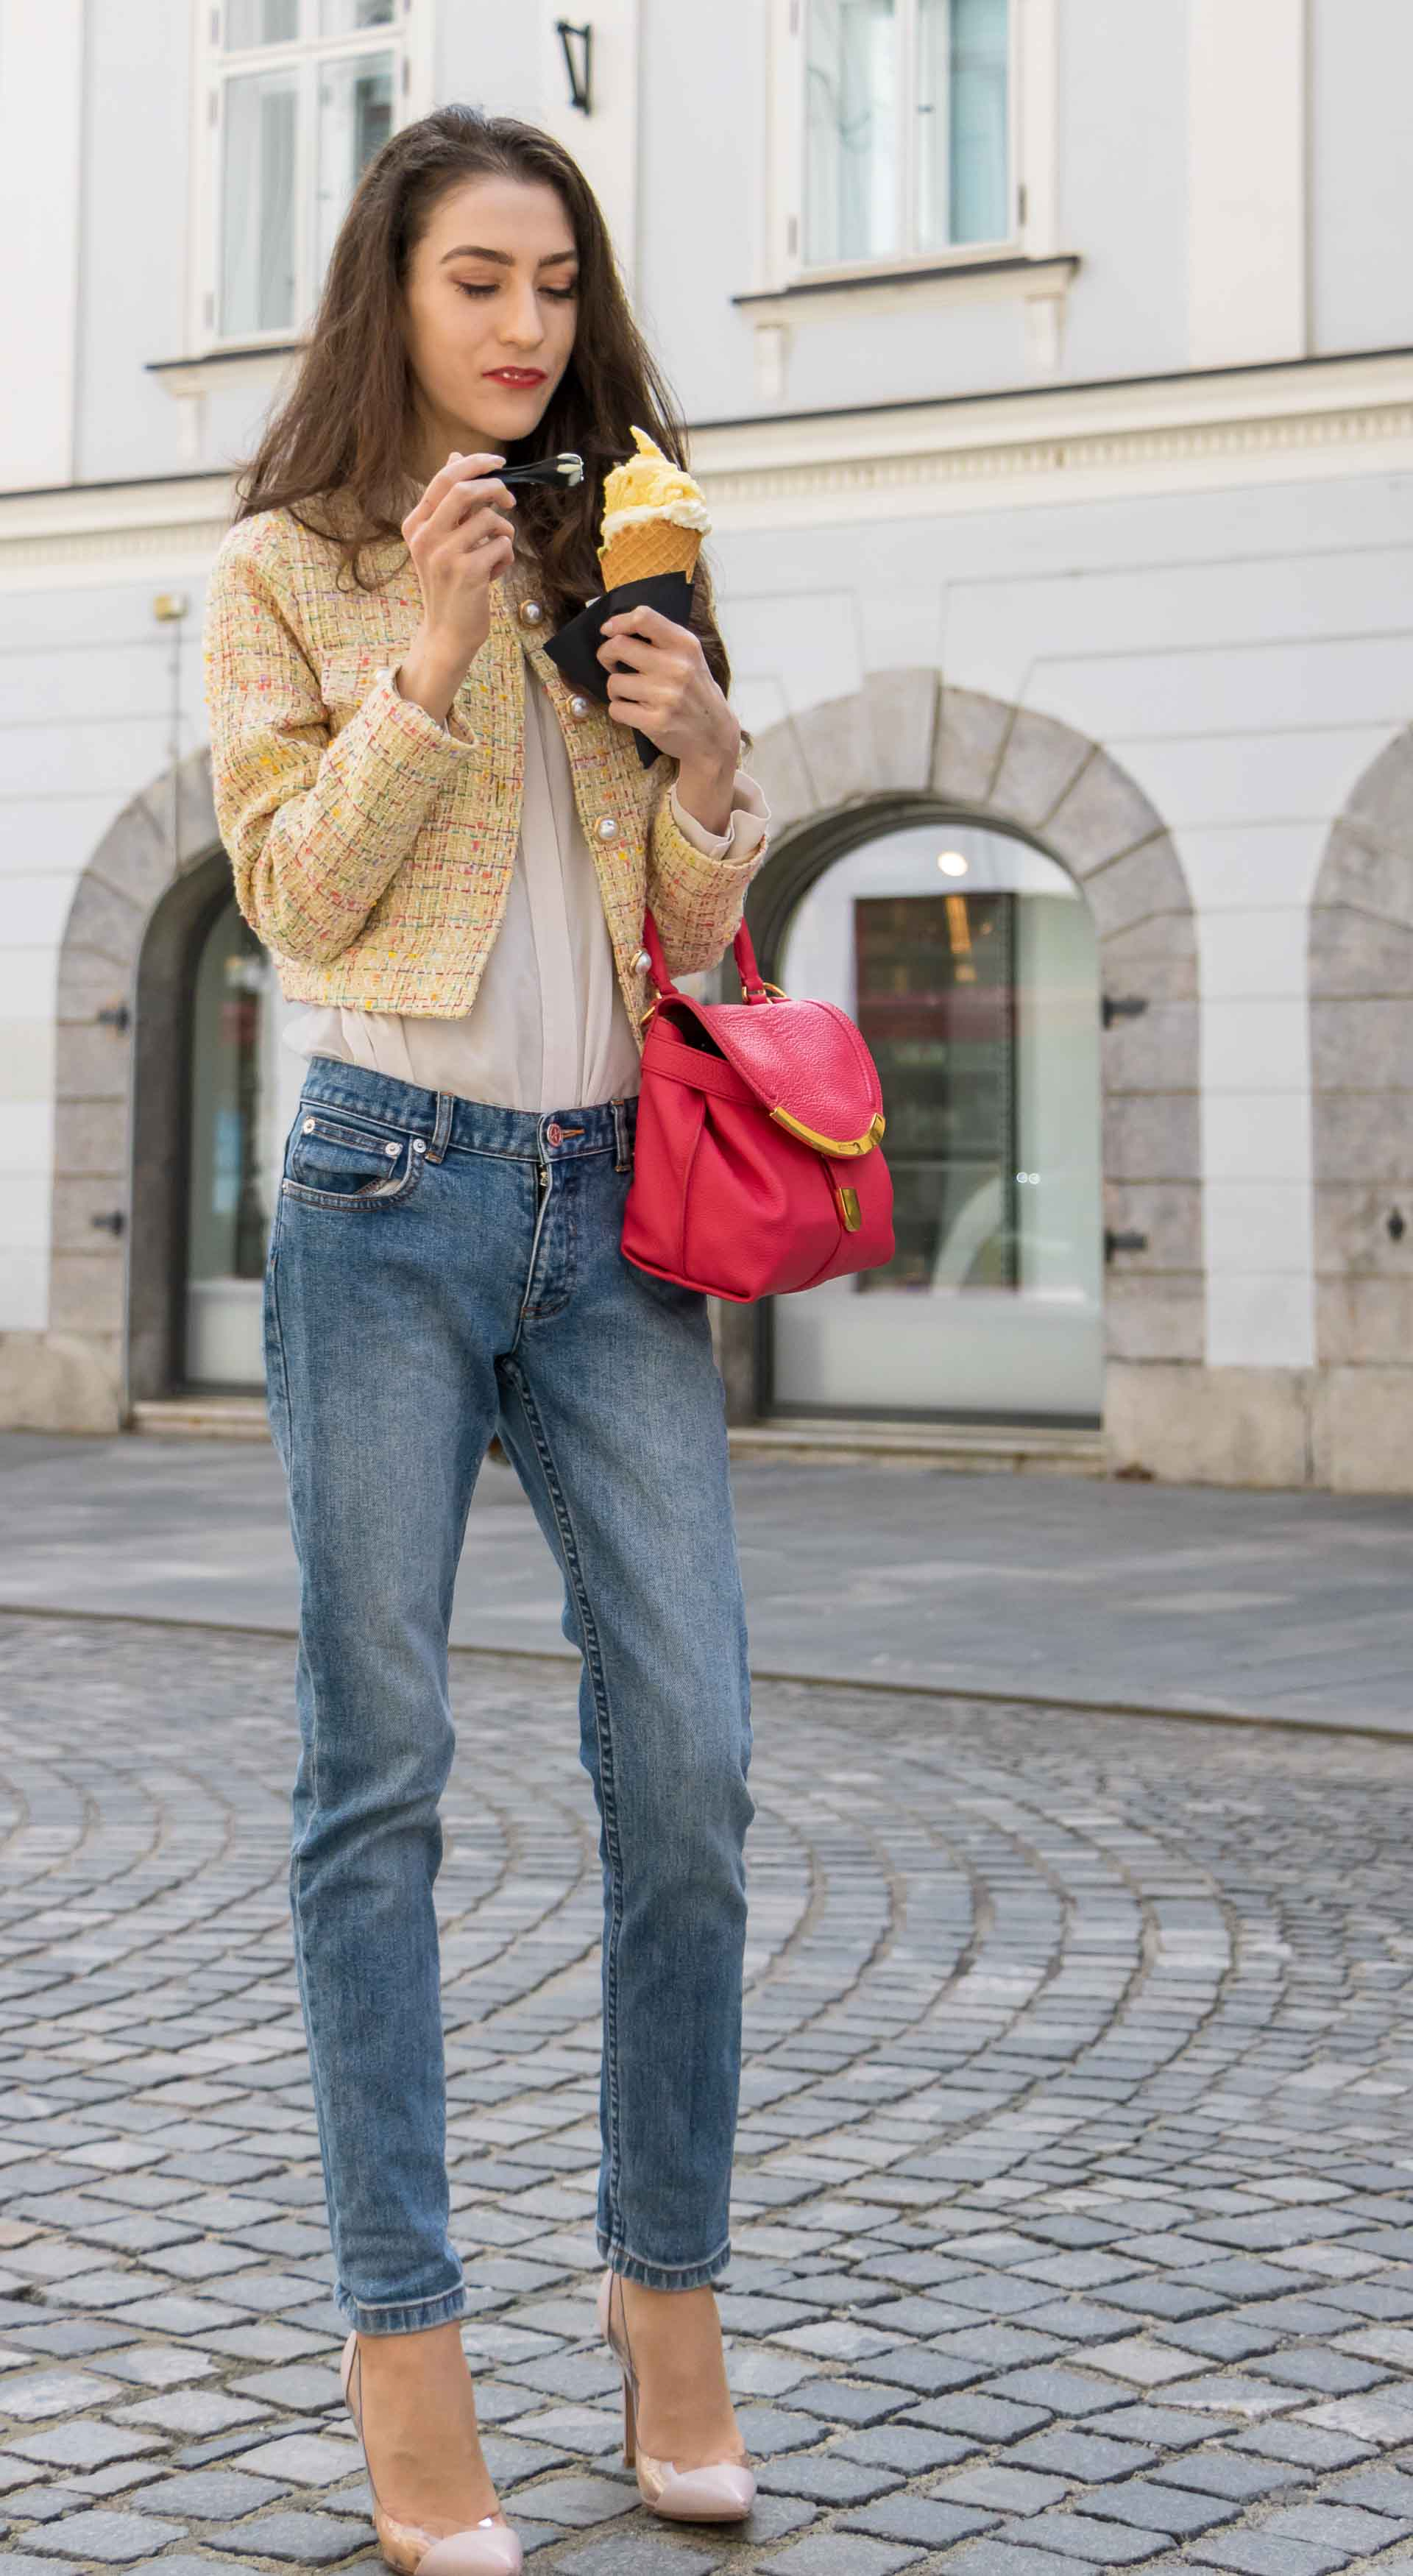 Veronika Lipar Fashion Blogger of Brunette from Wall Street dressed in chic casual everyday spring outfit, the yellow tweed jacket from Storets, blue jeans from A.P.C., blush Gianvito Rossi plexi pumps, pink top handle bag and organza white shirt on the street eating ice cream